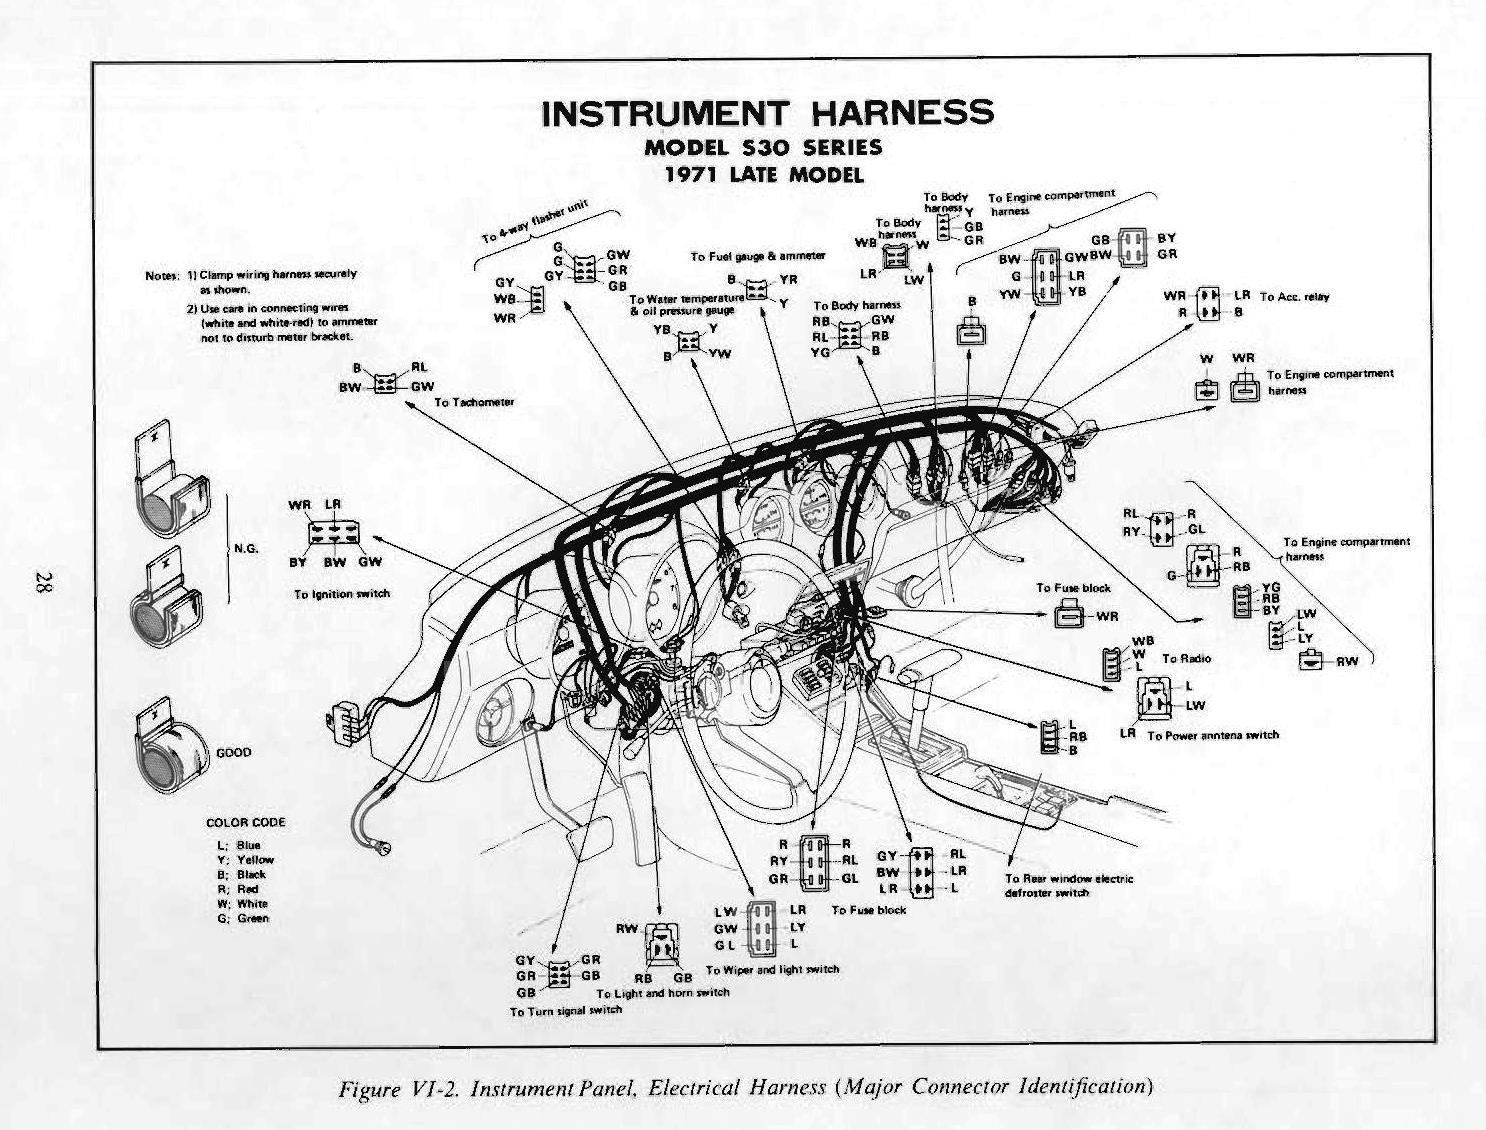 datsun 240z 1971 fsm supplement dash  gauges  wiring  hvac hvac wiring diagrams hvac wiring diagrams hvac wiring diagrams hvac wiring diagrams